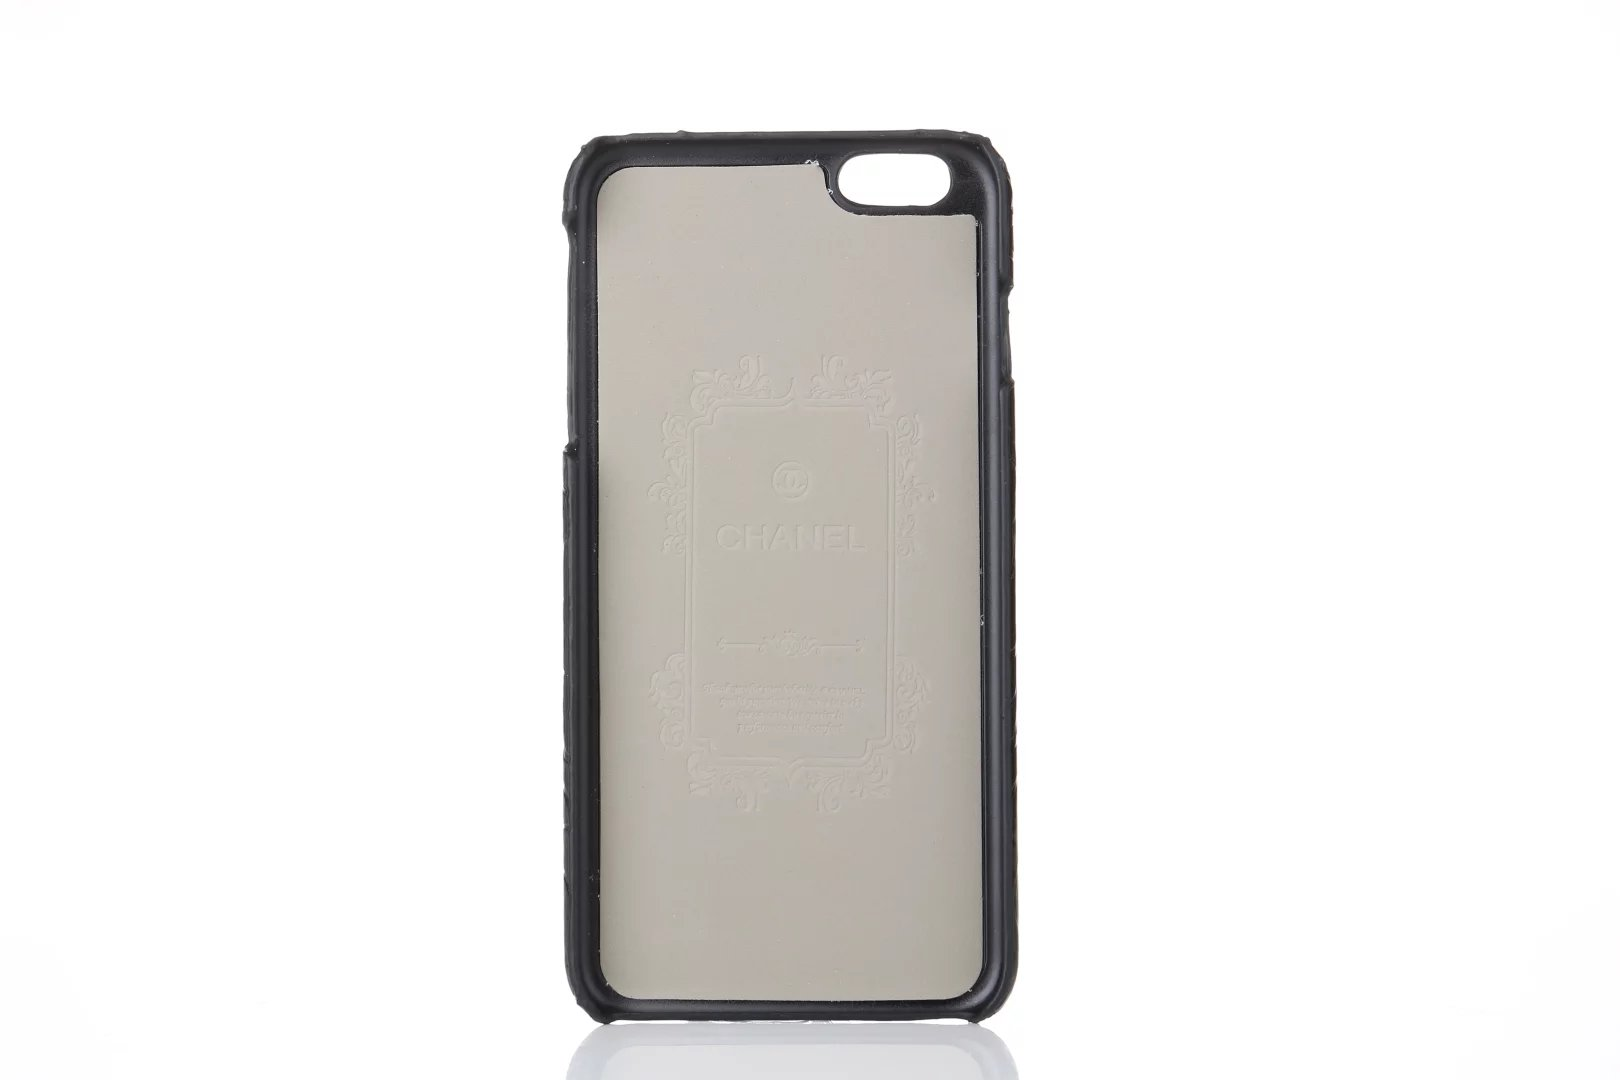 iphone 6 cases uk iphone 6 phone covers fashion iphone6 case 6 iphone case where to buy custom phone cases make your own cell phone case online iphone 6 release ipod case designer cheap cell phone covers